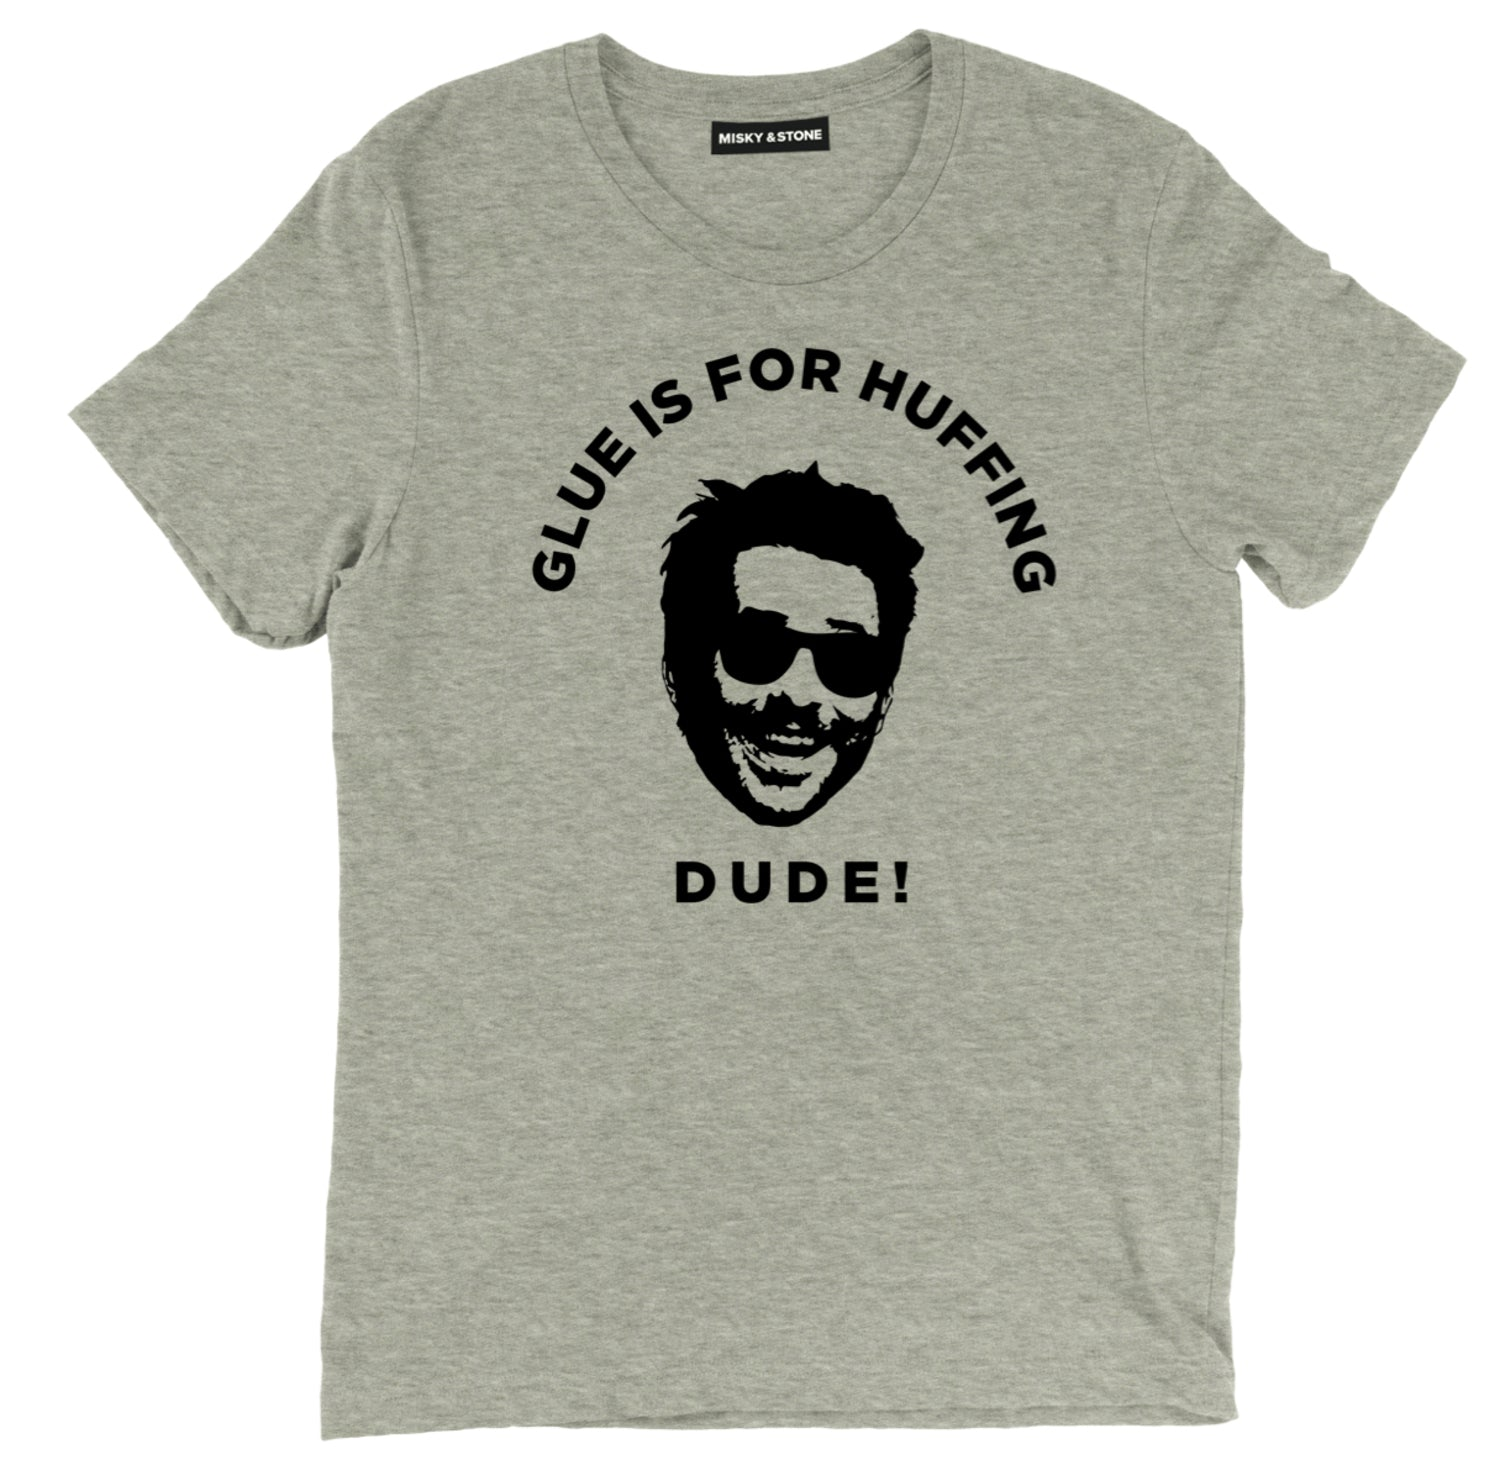 Glue Is For Huffing Dude T Shirt